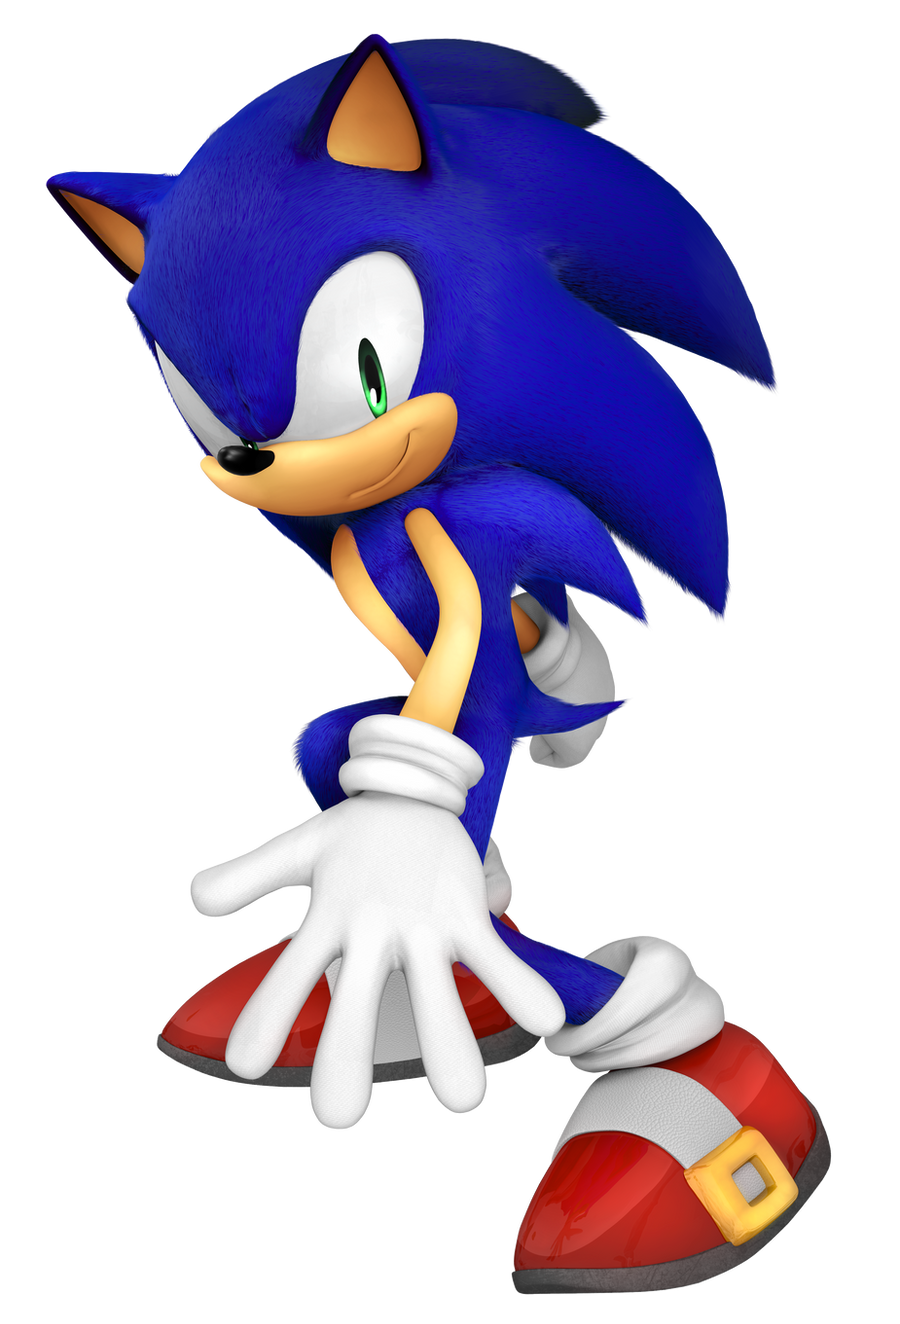 Sonic The Hedgehog 3D pose (?) by Fentonxd